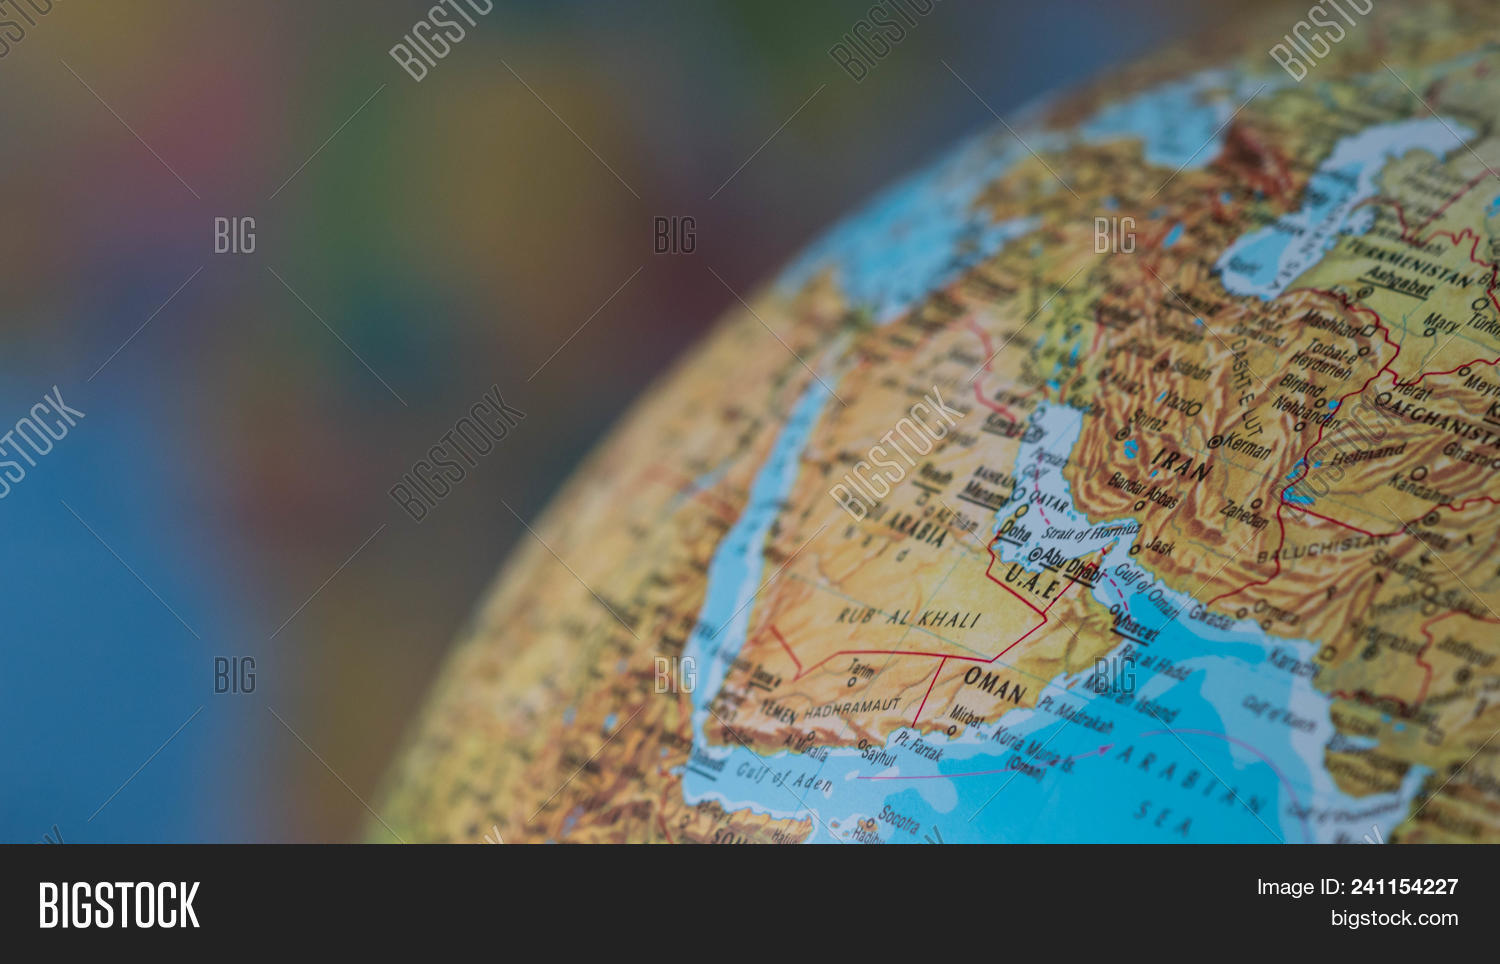 Africa Middle East Map Image & Photo (Free Trial) | Bigstock